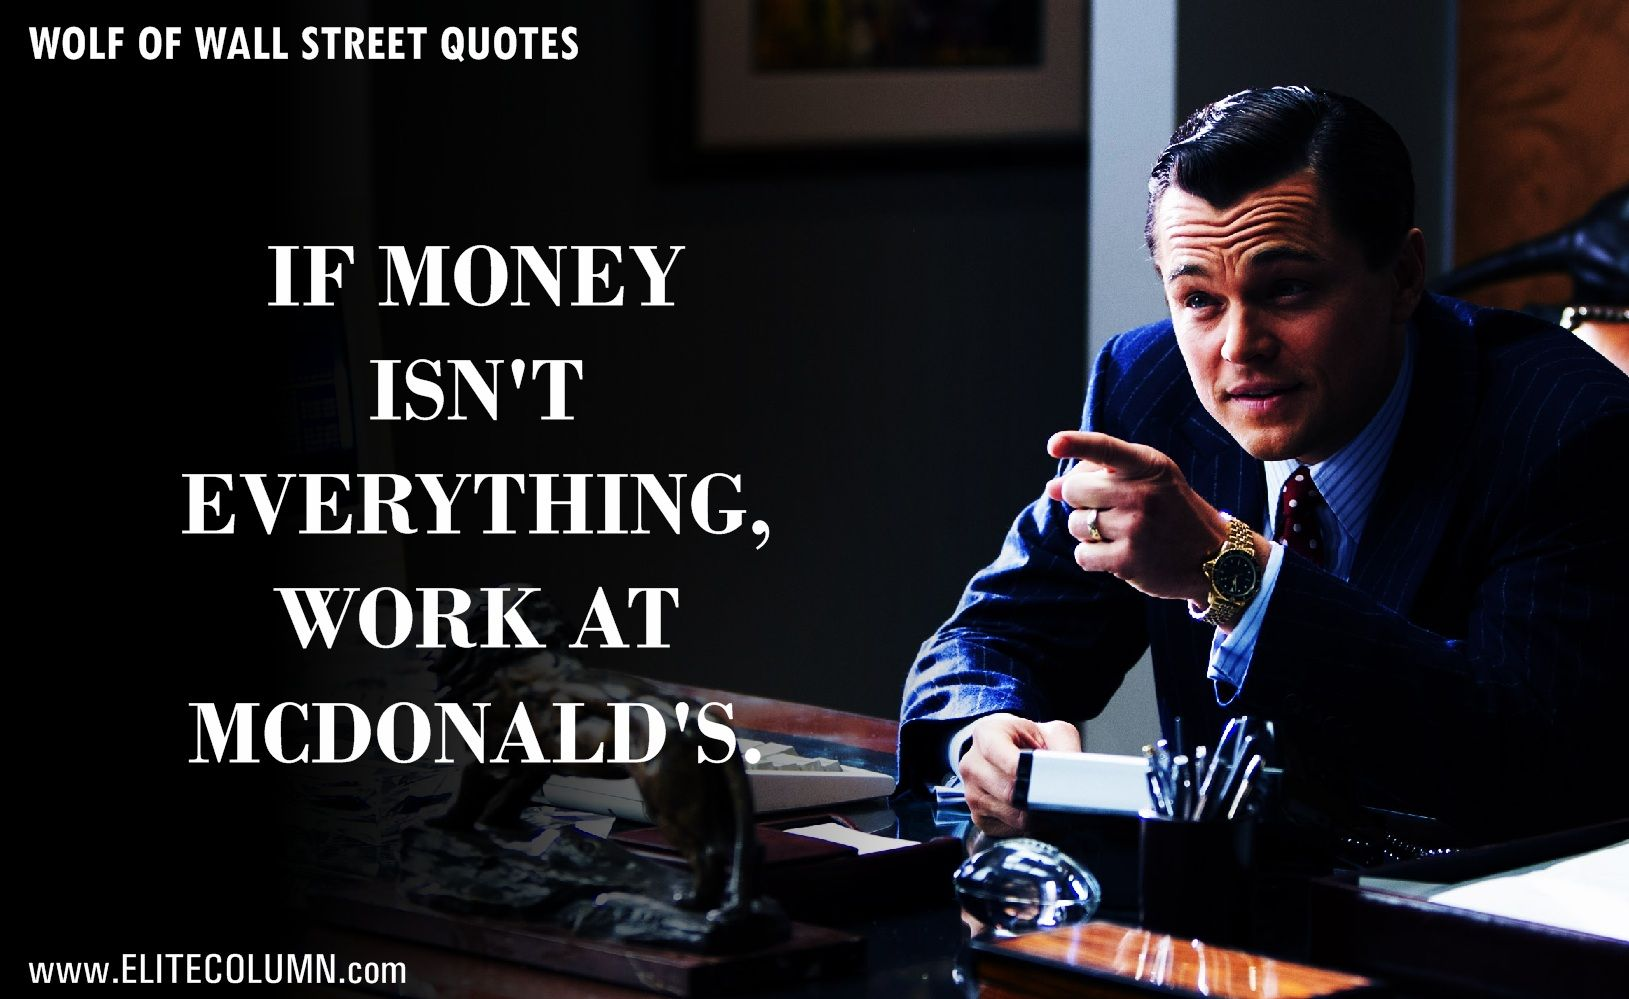 Wolf Of Wall Street Quotes Wallpapers Top Free Wolf Of Wall